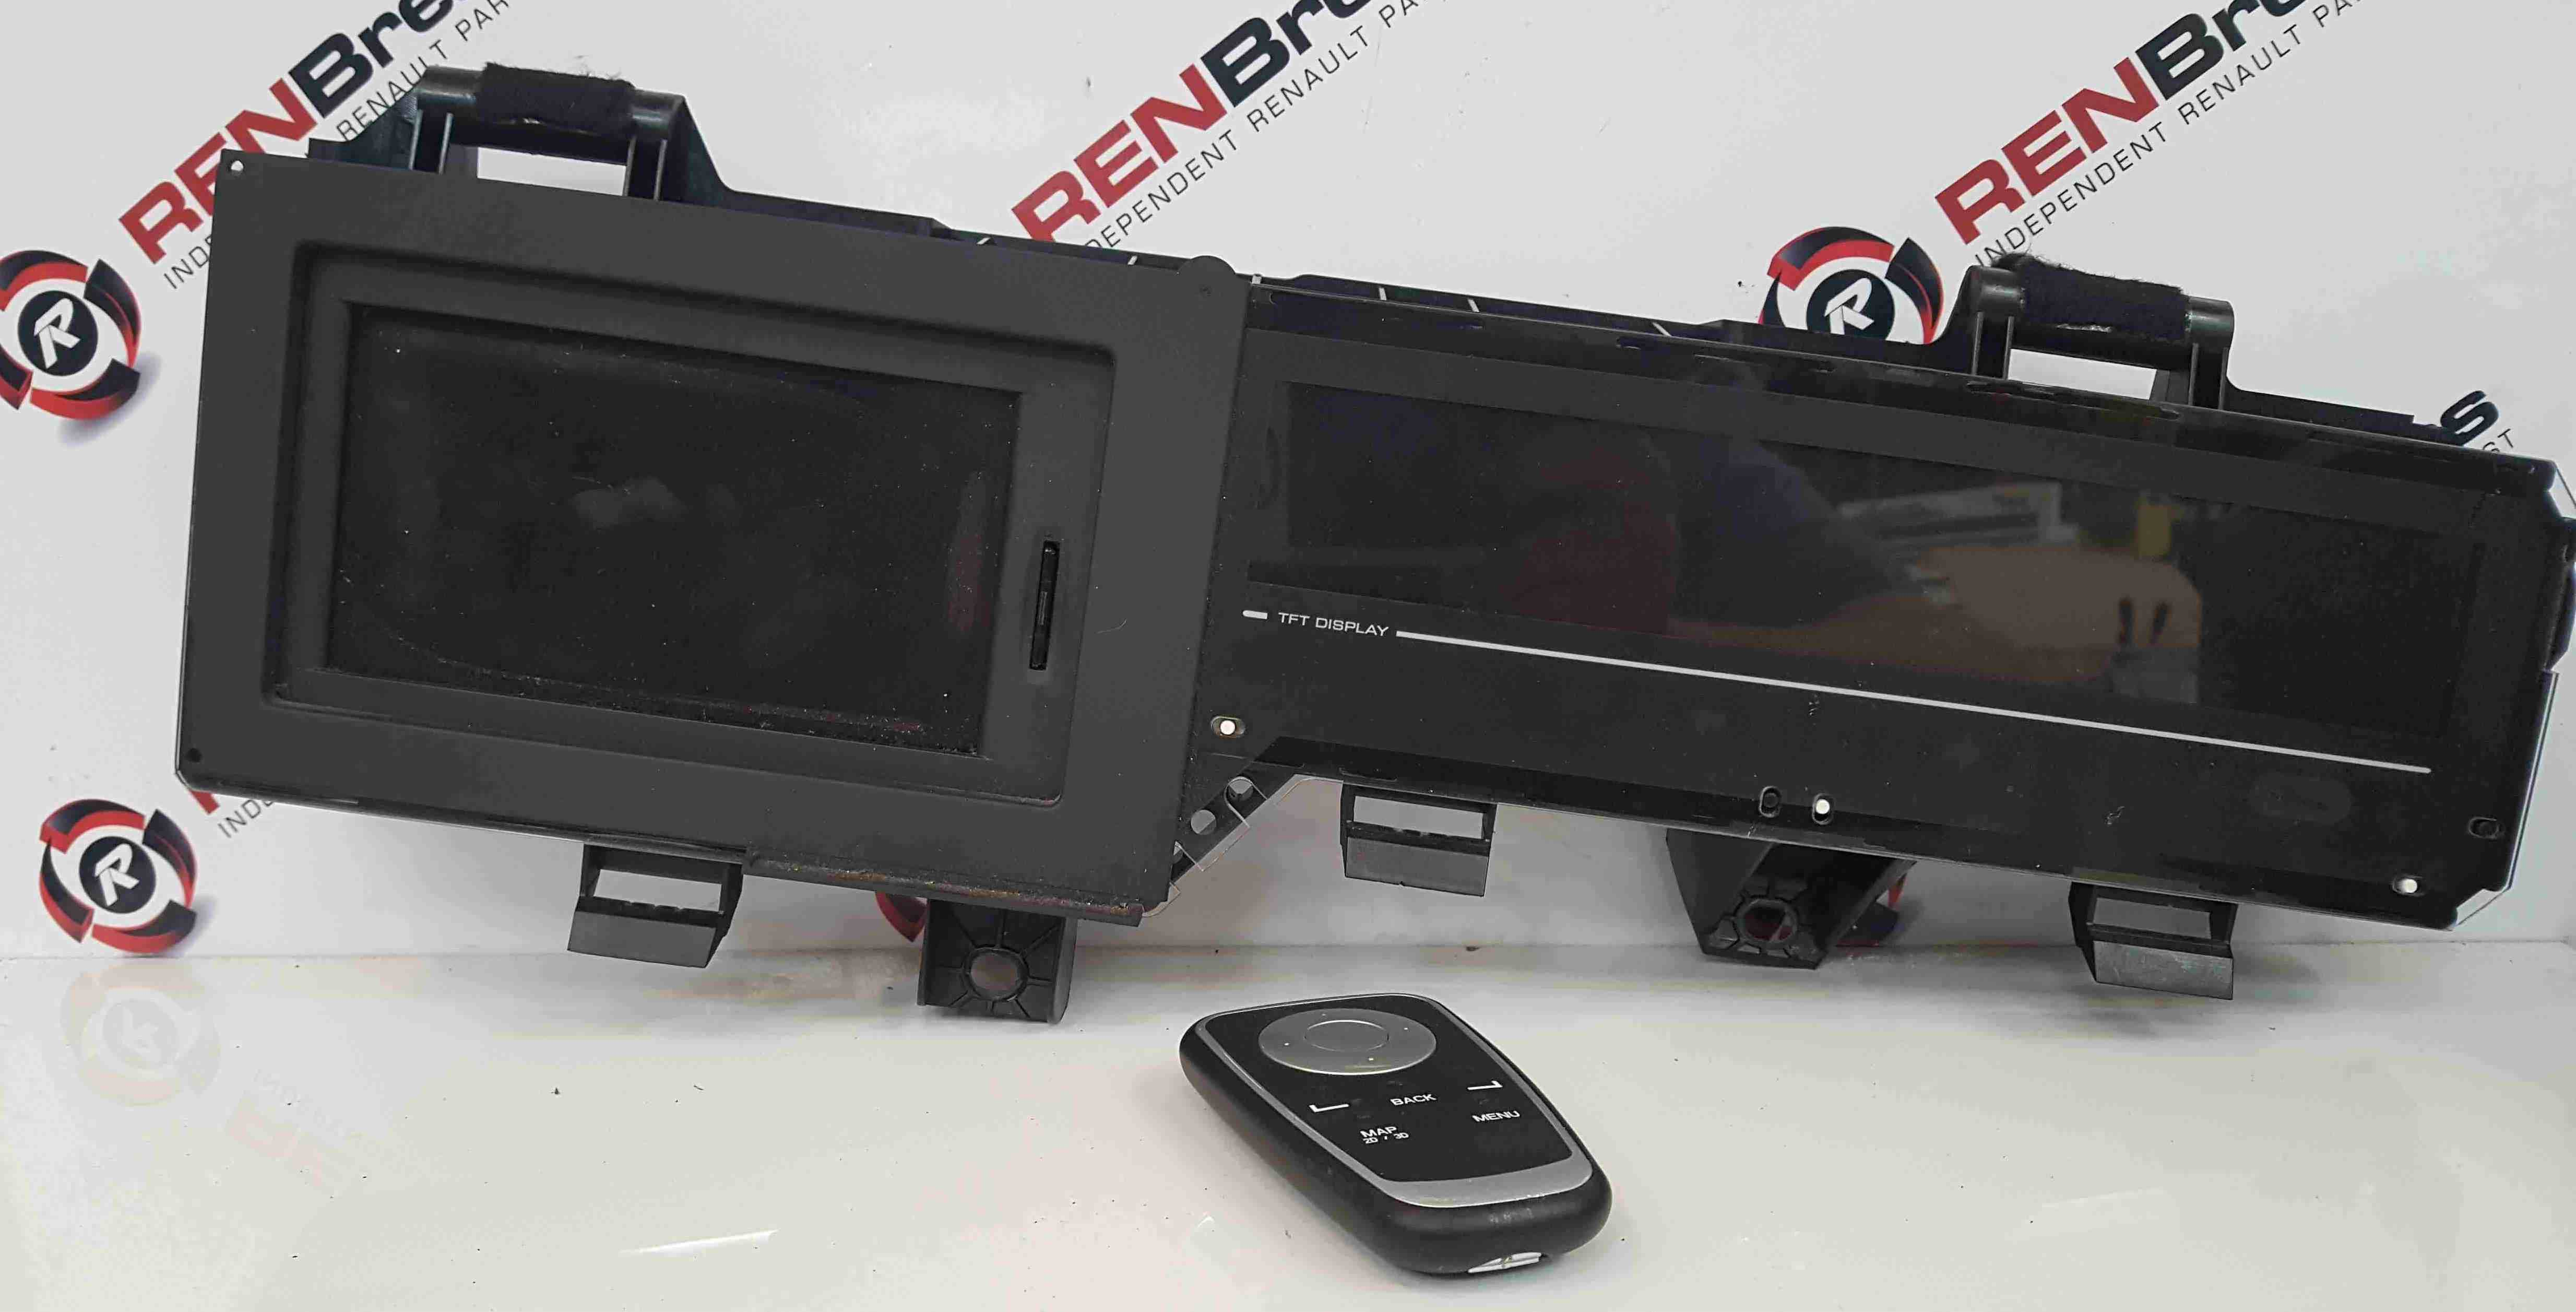 Renault Scenic MK3 2009-2016 Cd Radio Display Unit With Control Controller